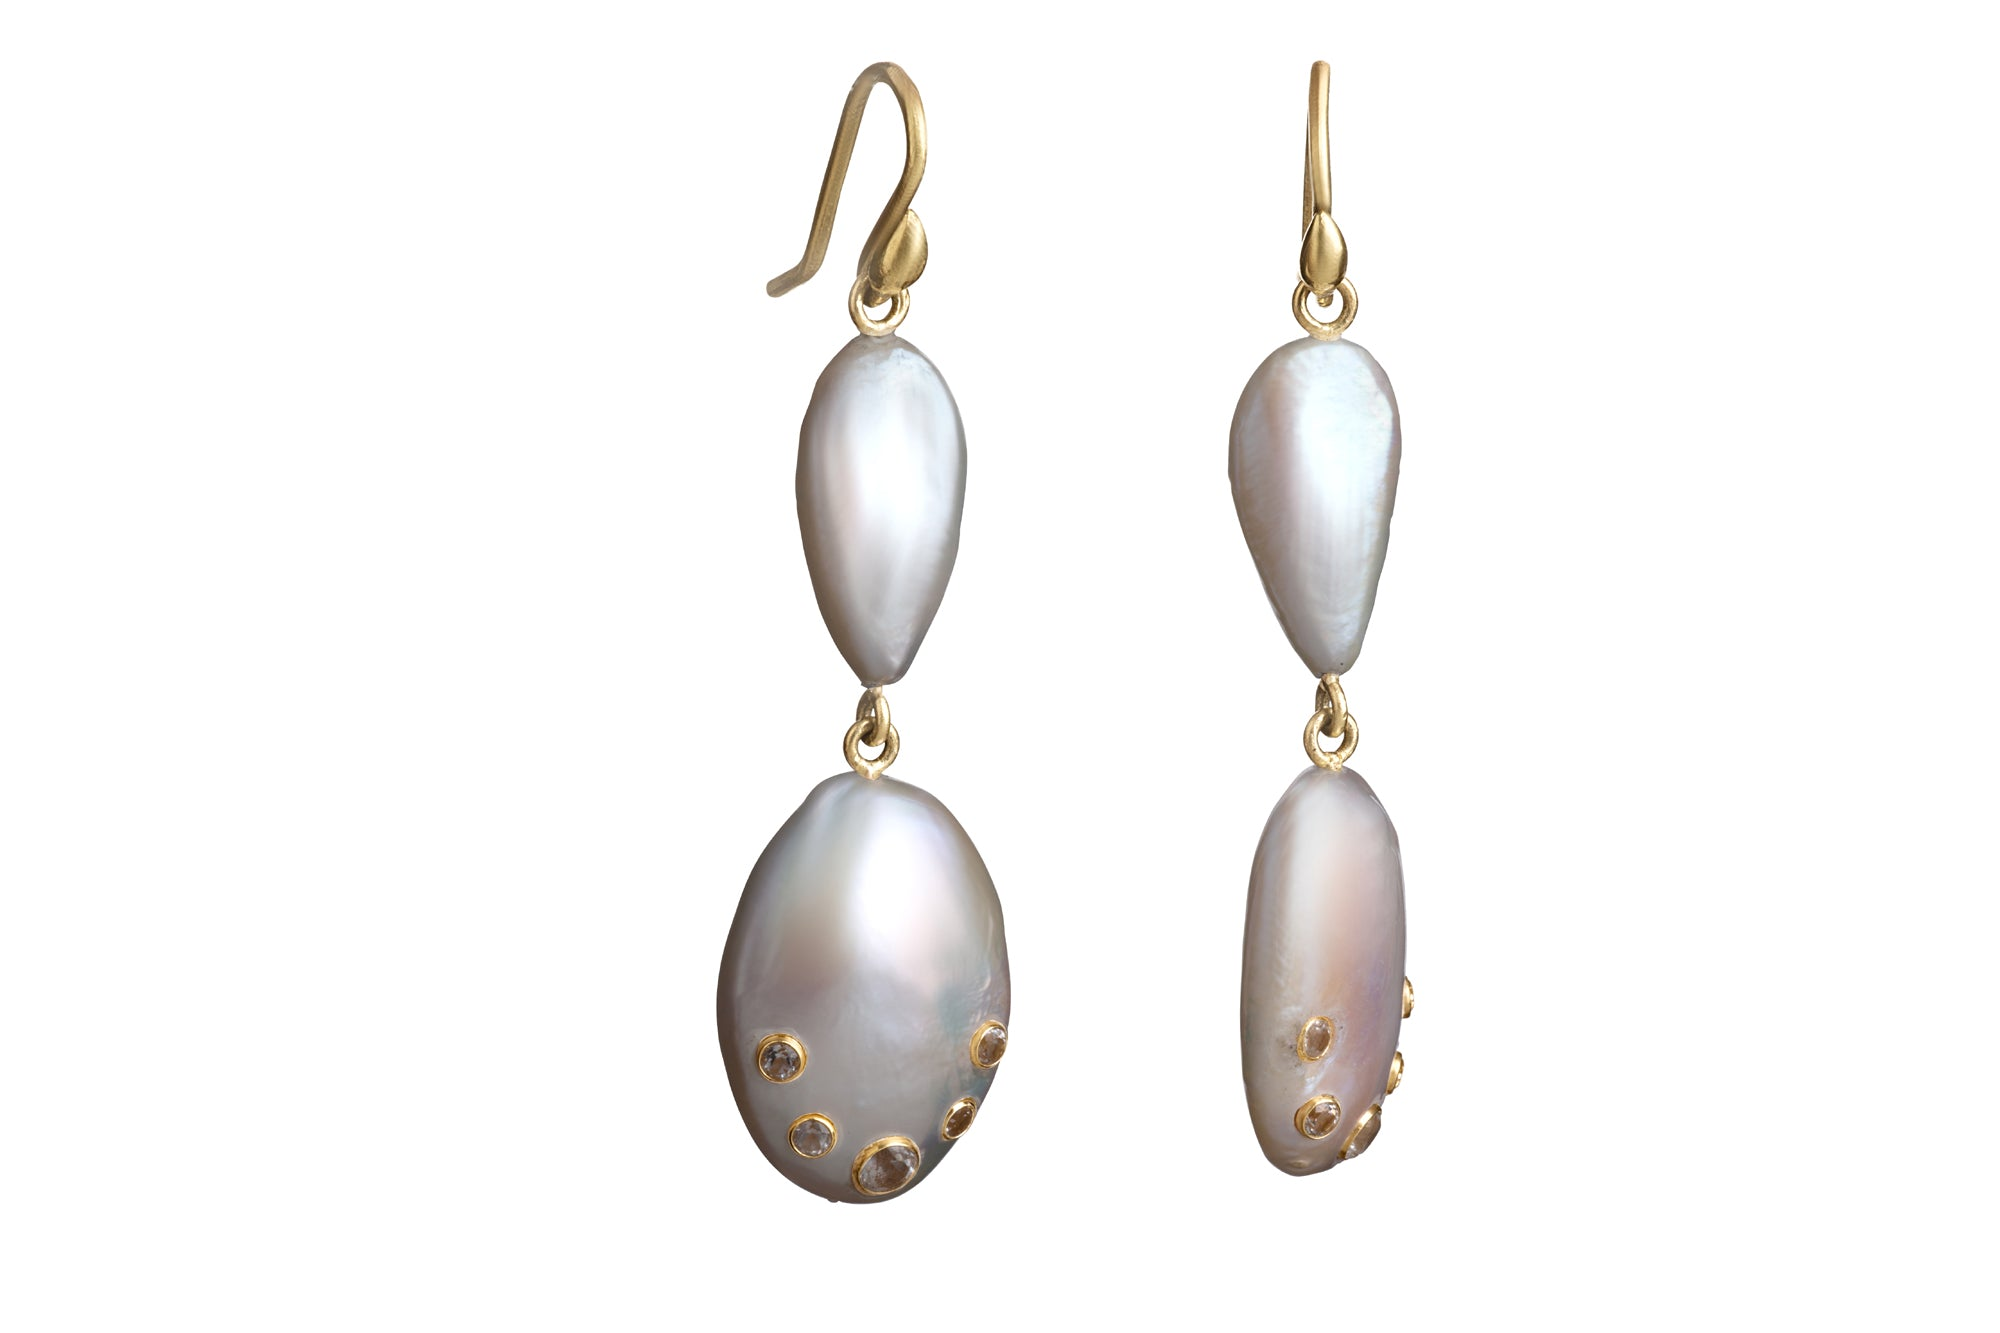 Double Tier Freshwater Pearl Earrings studded with Signities